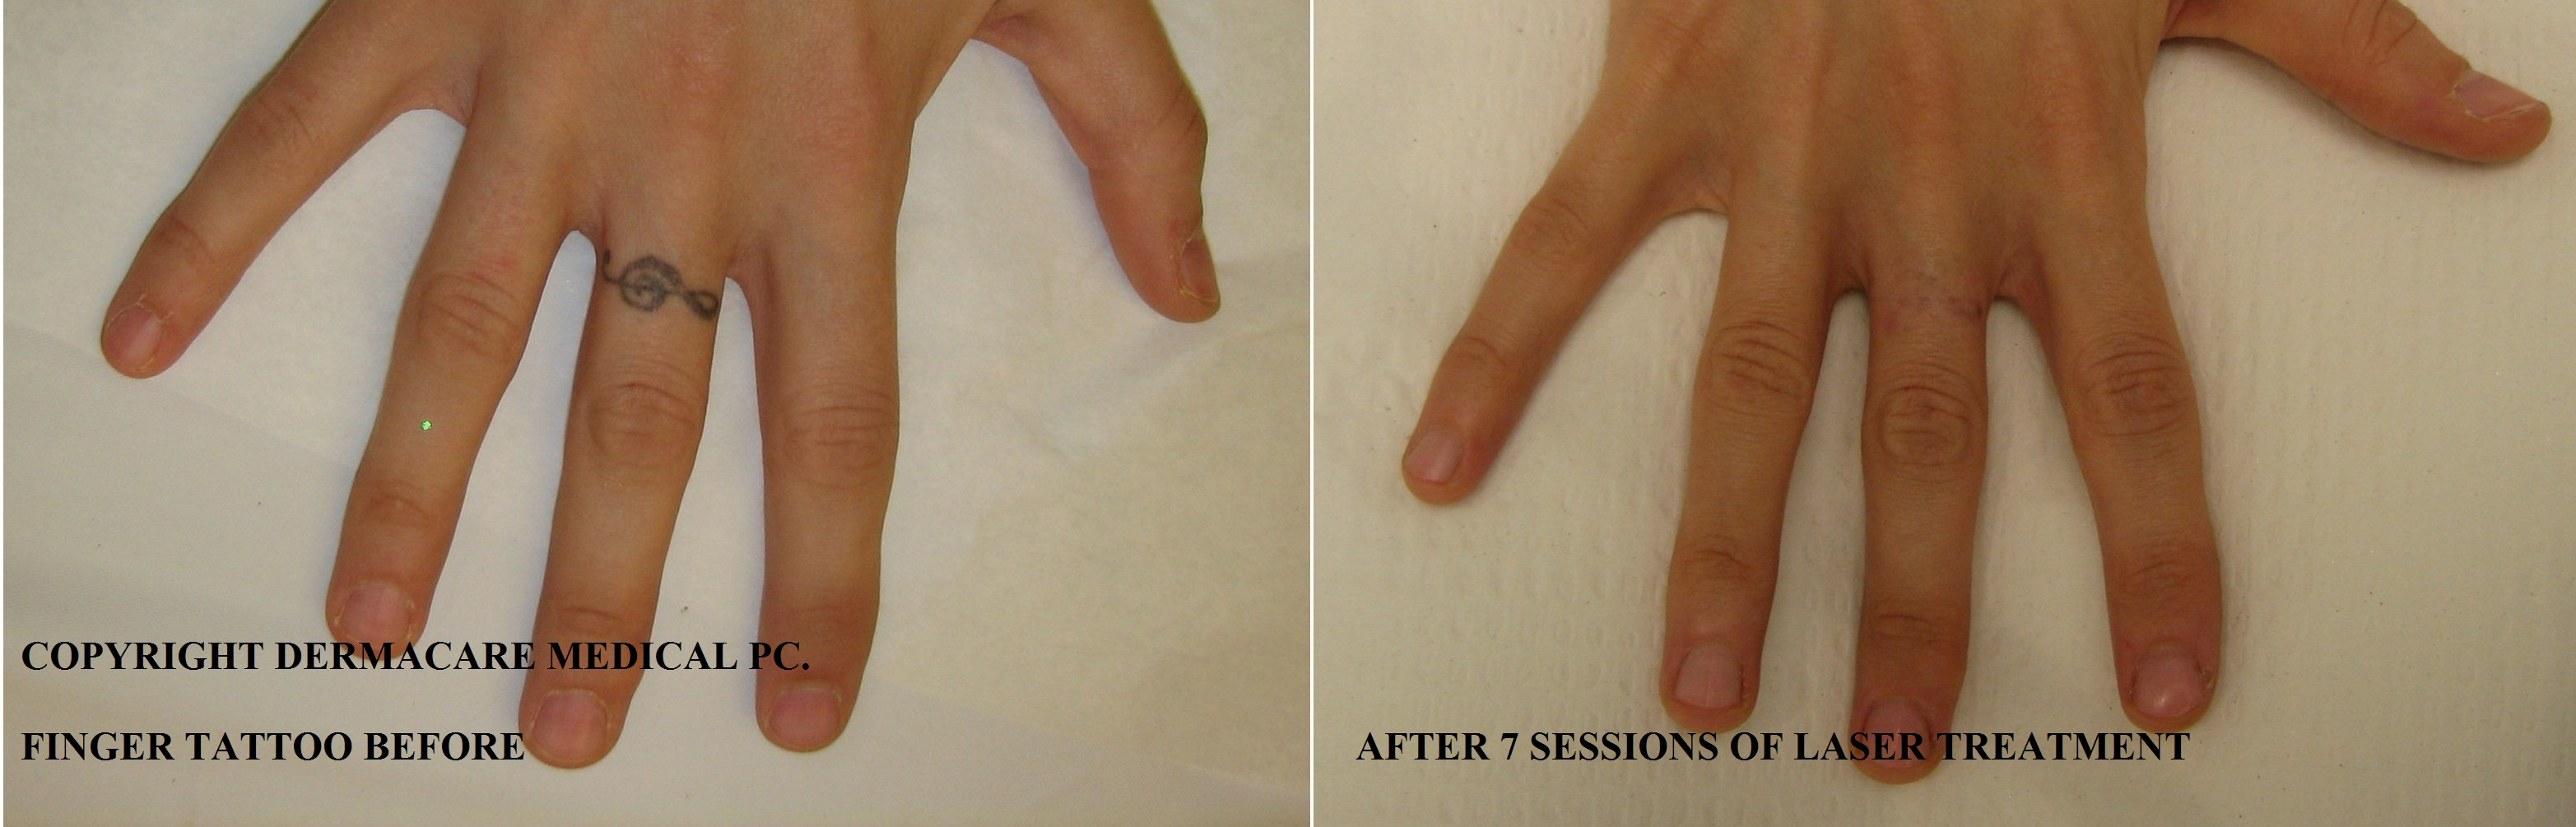 Besshamann for Laser tattoo removal pictures after 1 treatment